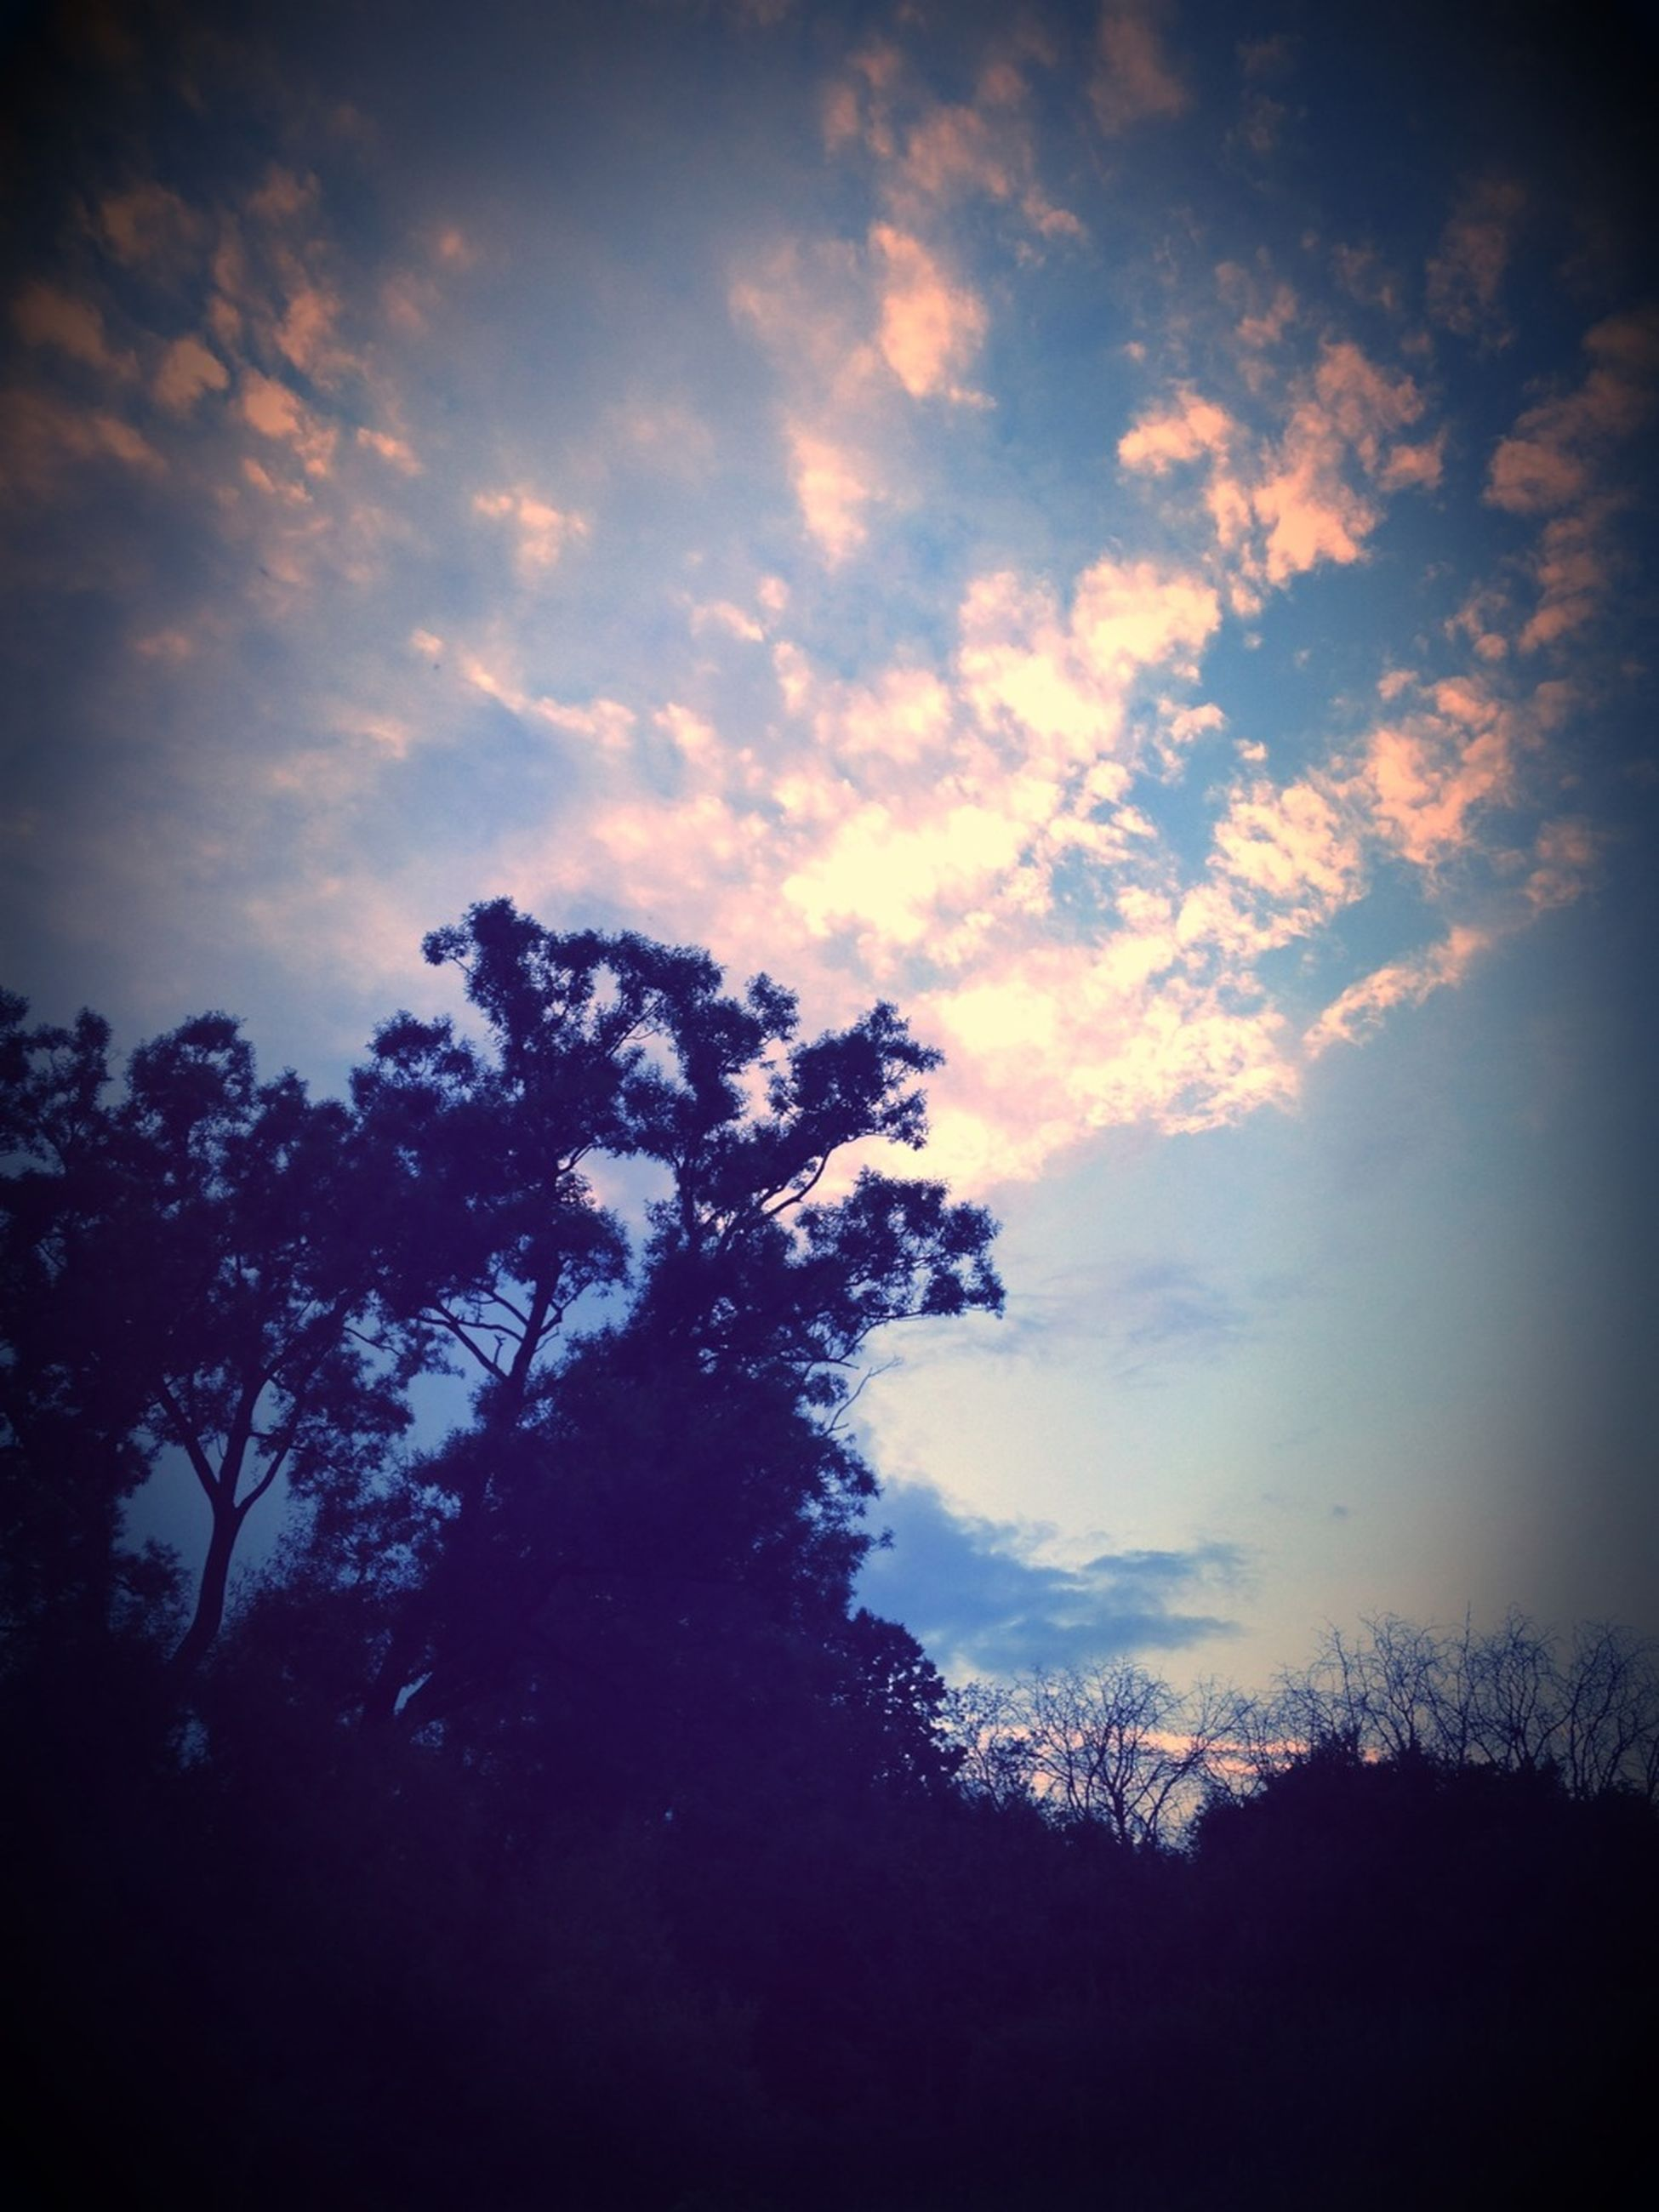 silhouette, sky, tree, tranquility, cloud - sky, beauty in nature, tranquil scene, sunset, scenics, low angle view, nature, cloudy, cloud, growth, idyllic, dusk, outdoors, branch, no people, landscape